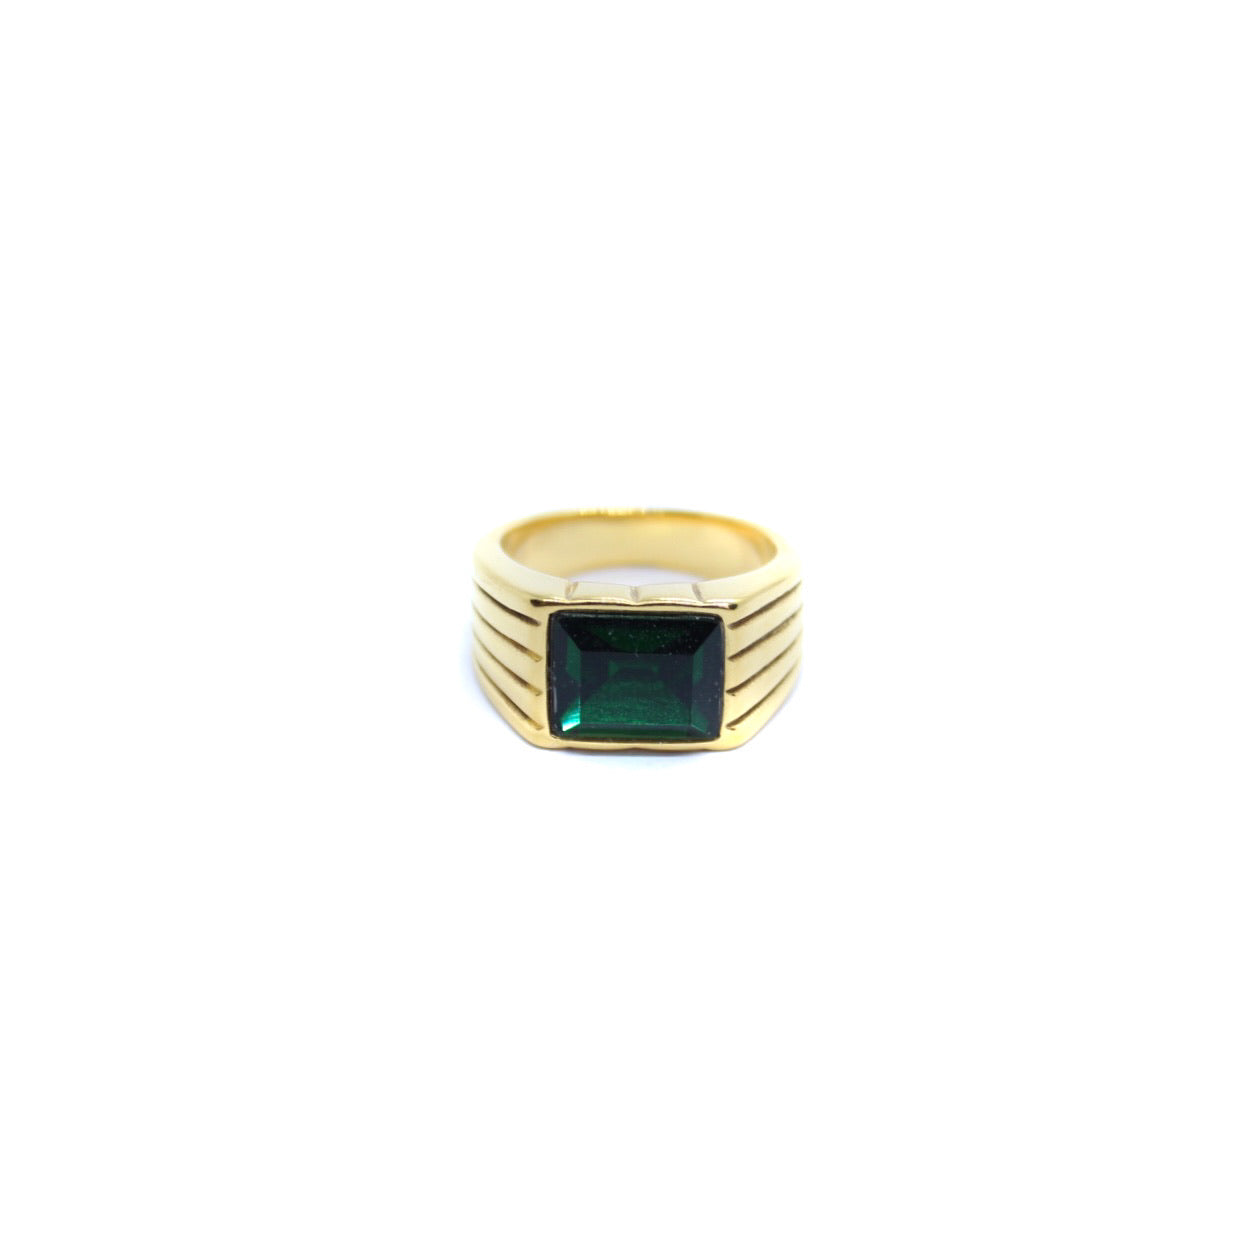 Exclusive Ring - Statement Square Green